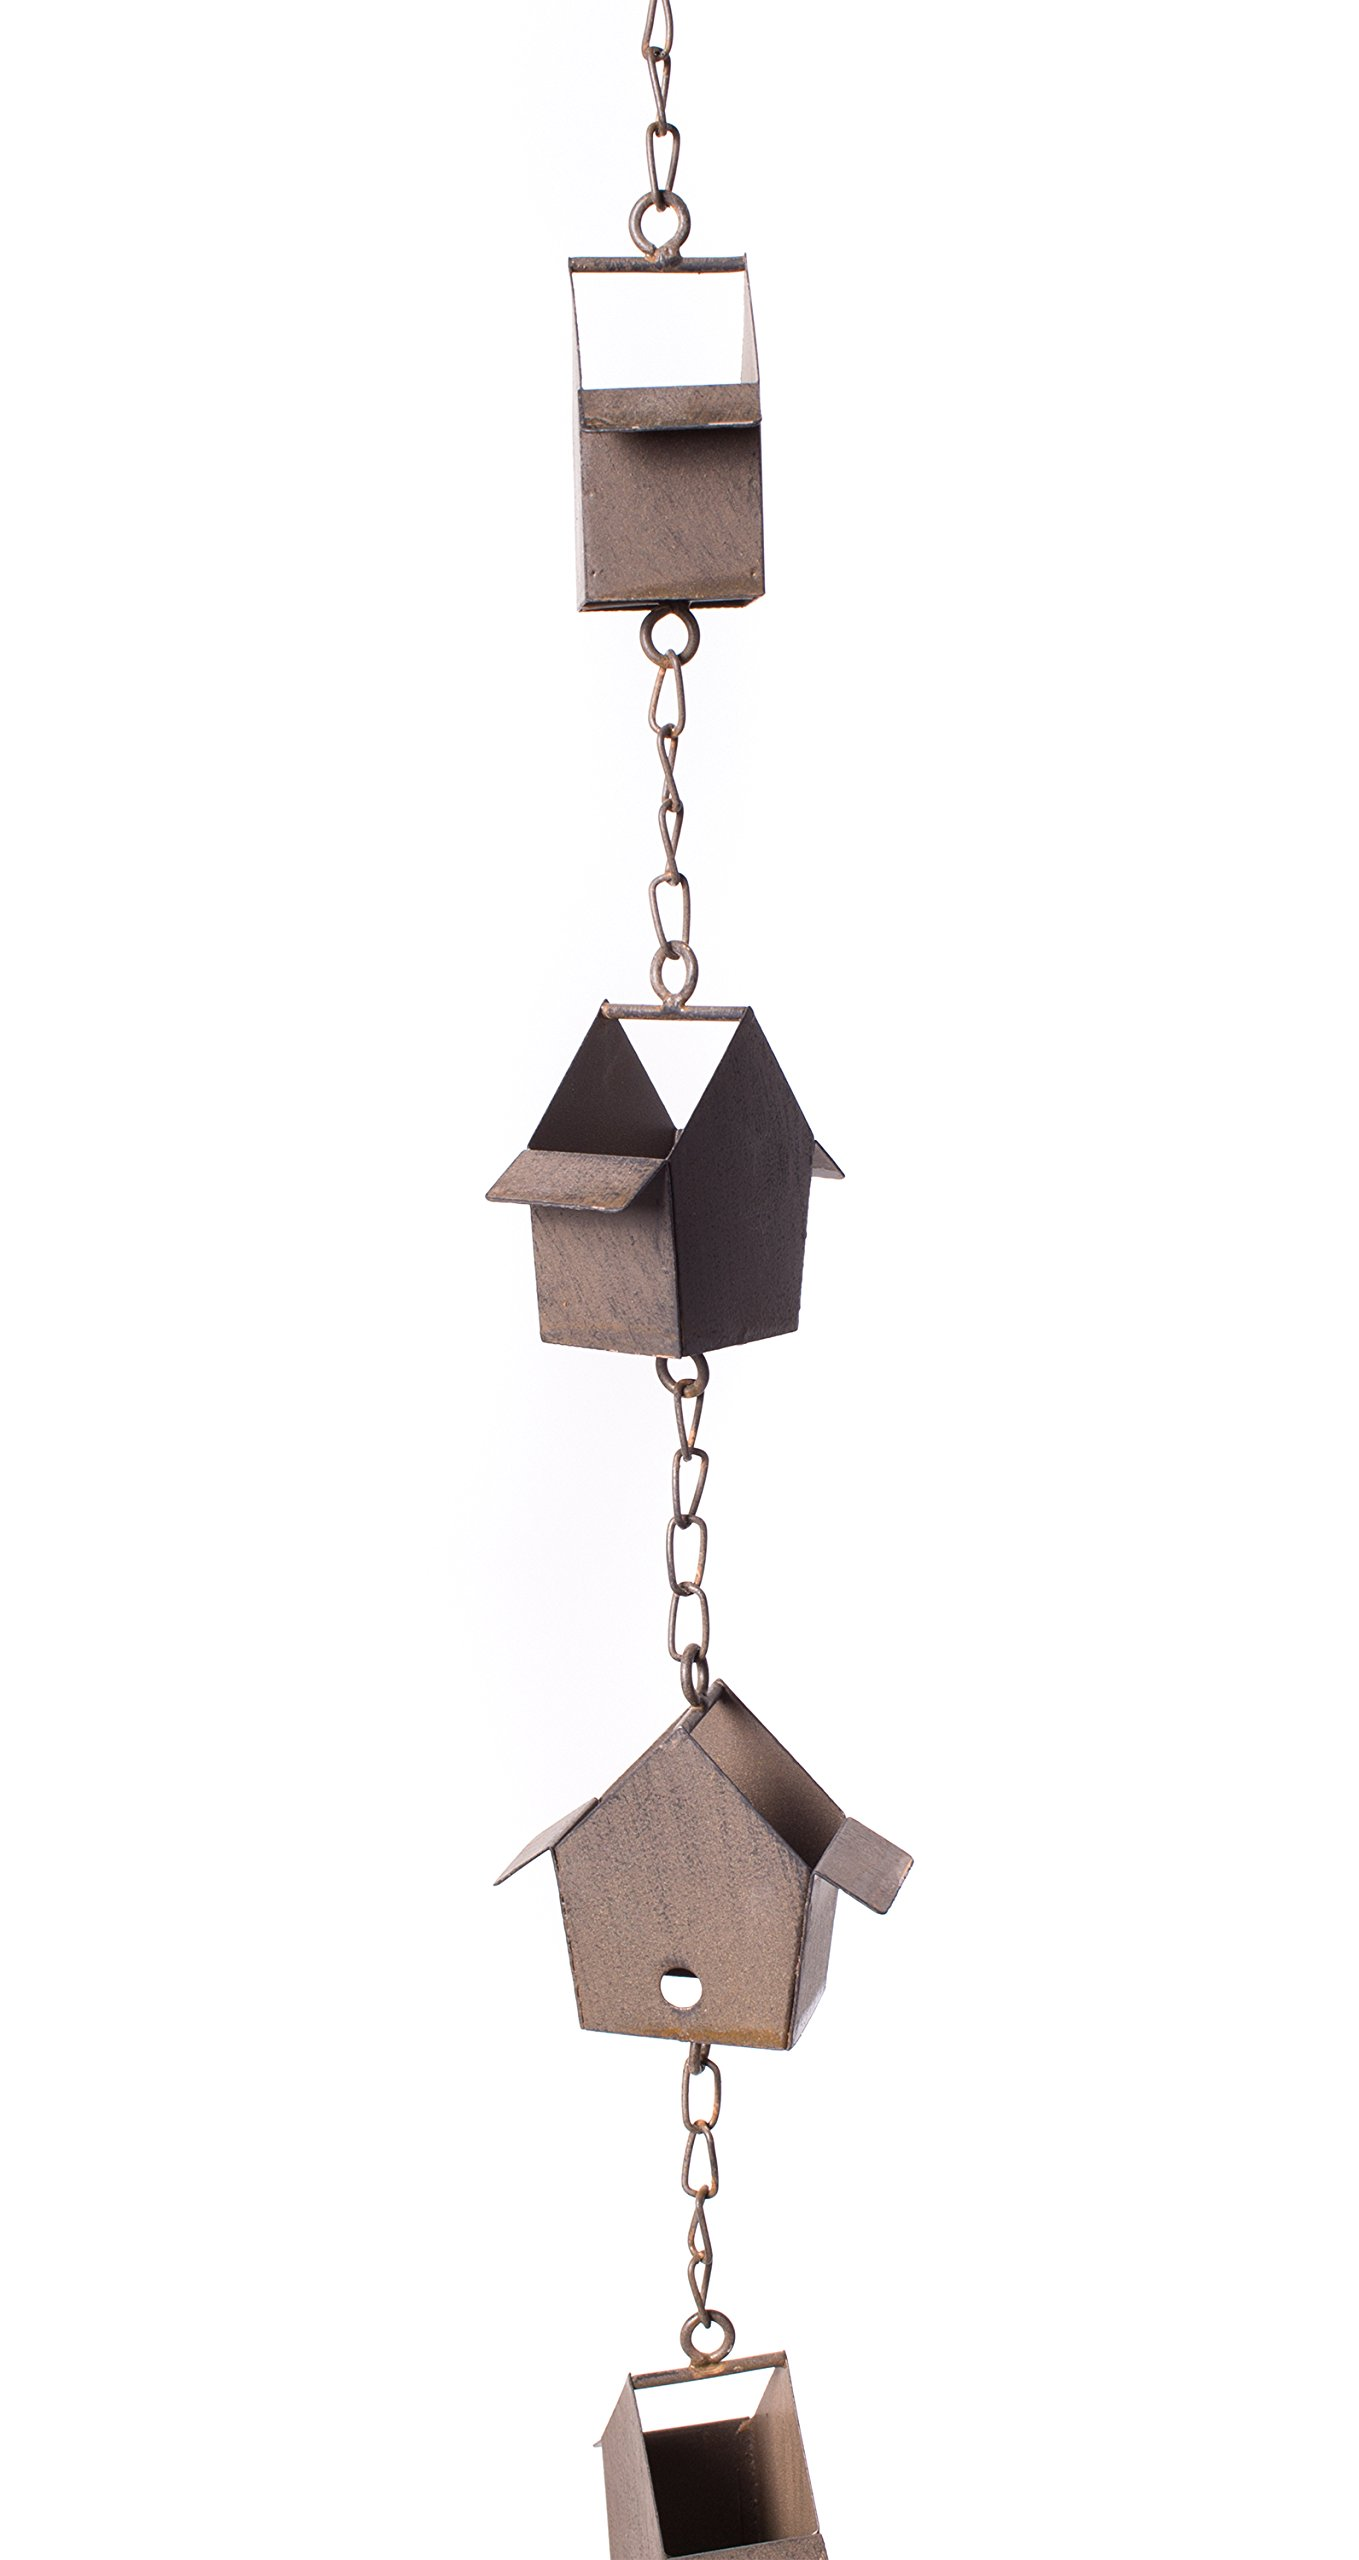 Red Co. Wonderful Decorative Metal Birdhouse Rain Chain, Iron Rain Catcher Ornament, Bronze Finish, Large 5 Feet